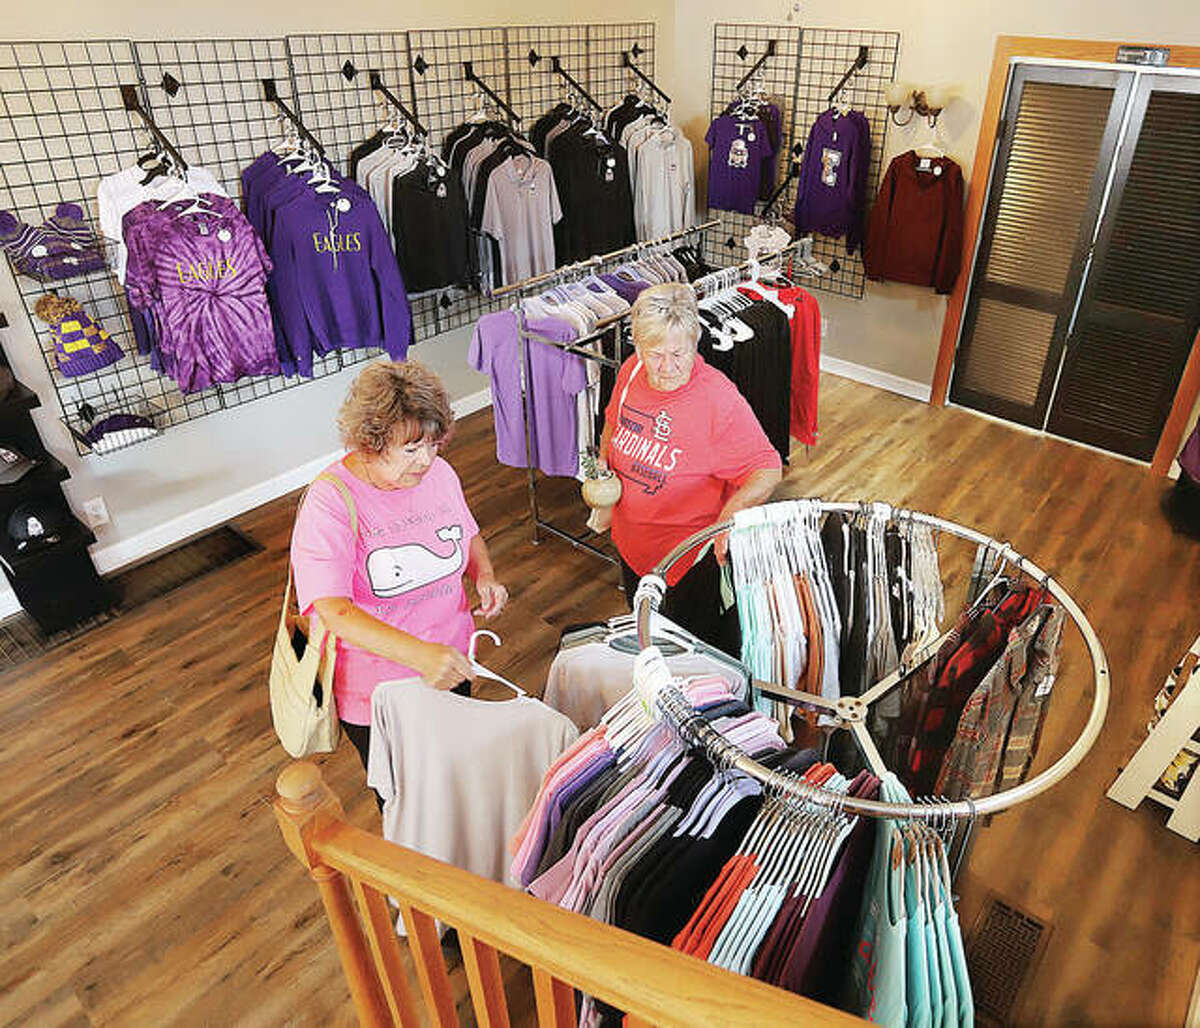 Diane Fielder, left, and Brenda Gibbons, right, both of Bethalto, shop Friday after the opening of The Co-Op at Klein Hall at 128 W. Central St. in Bethalto.